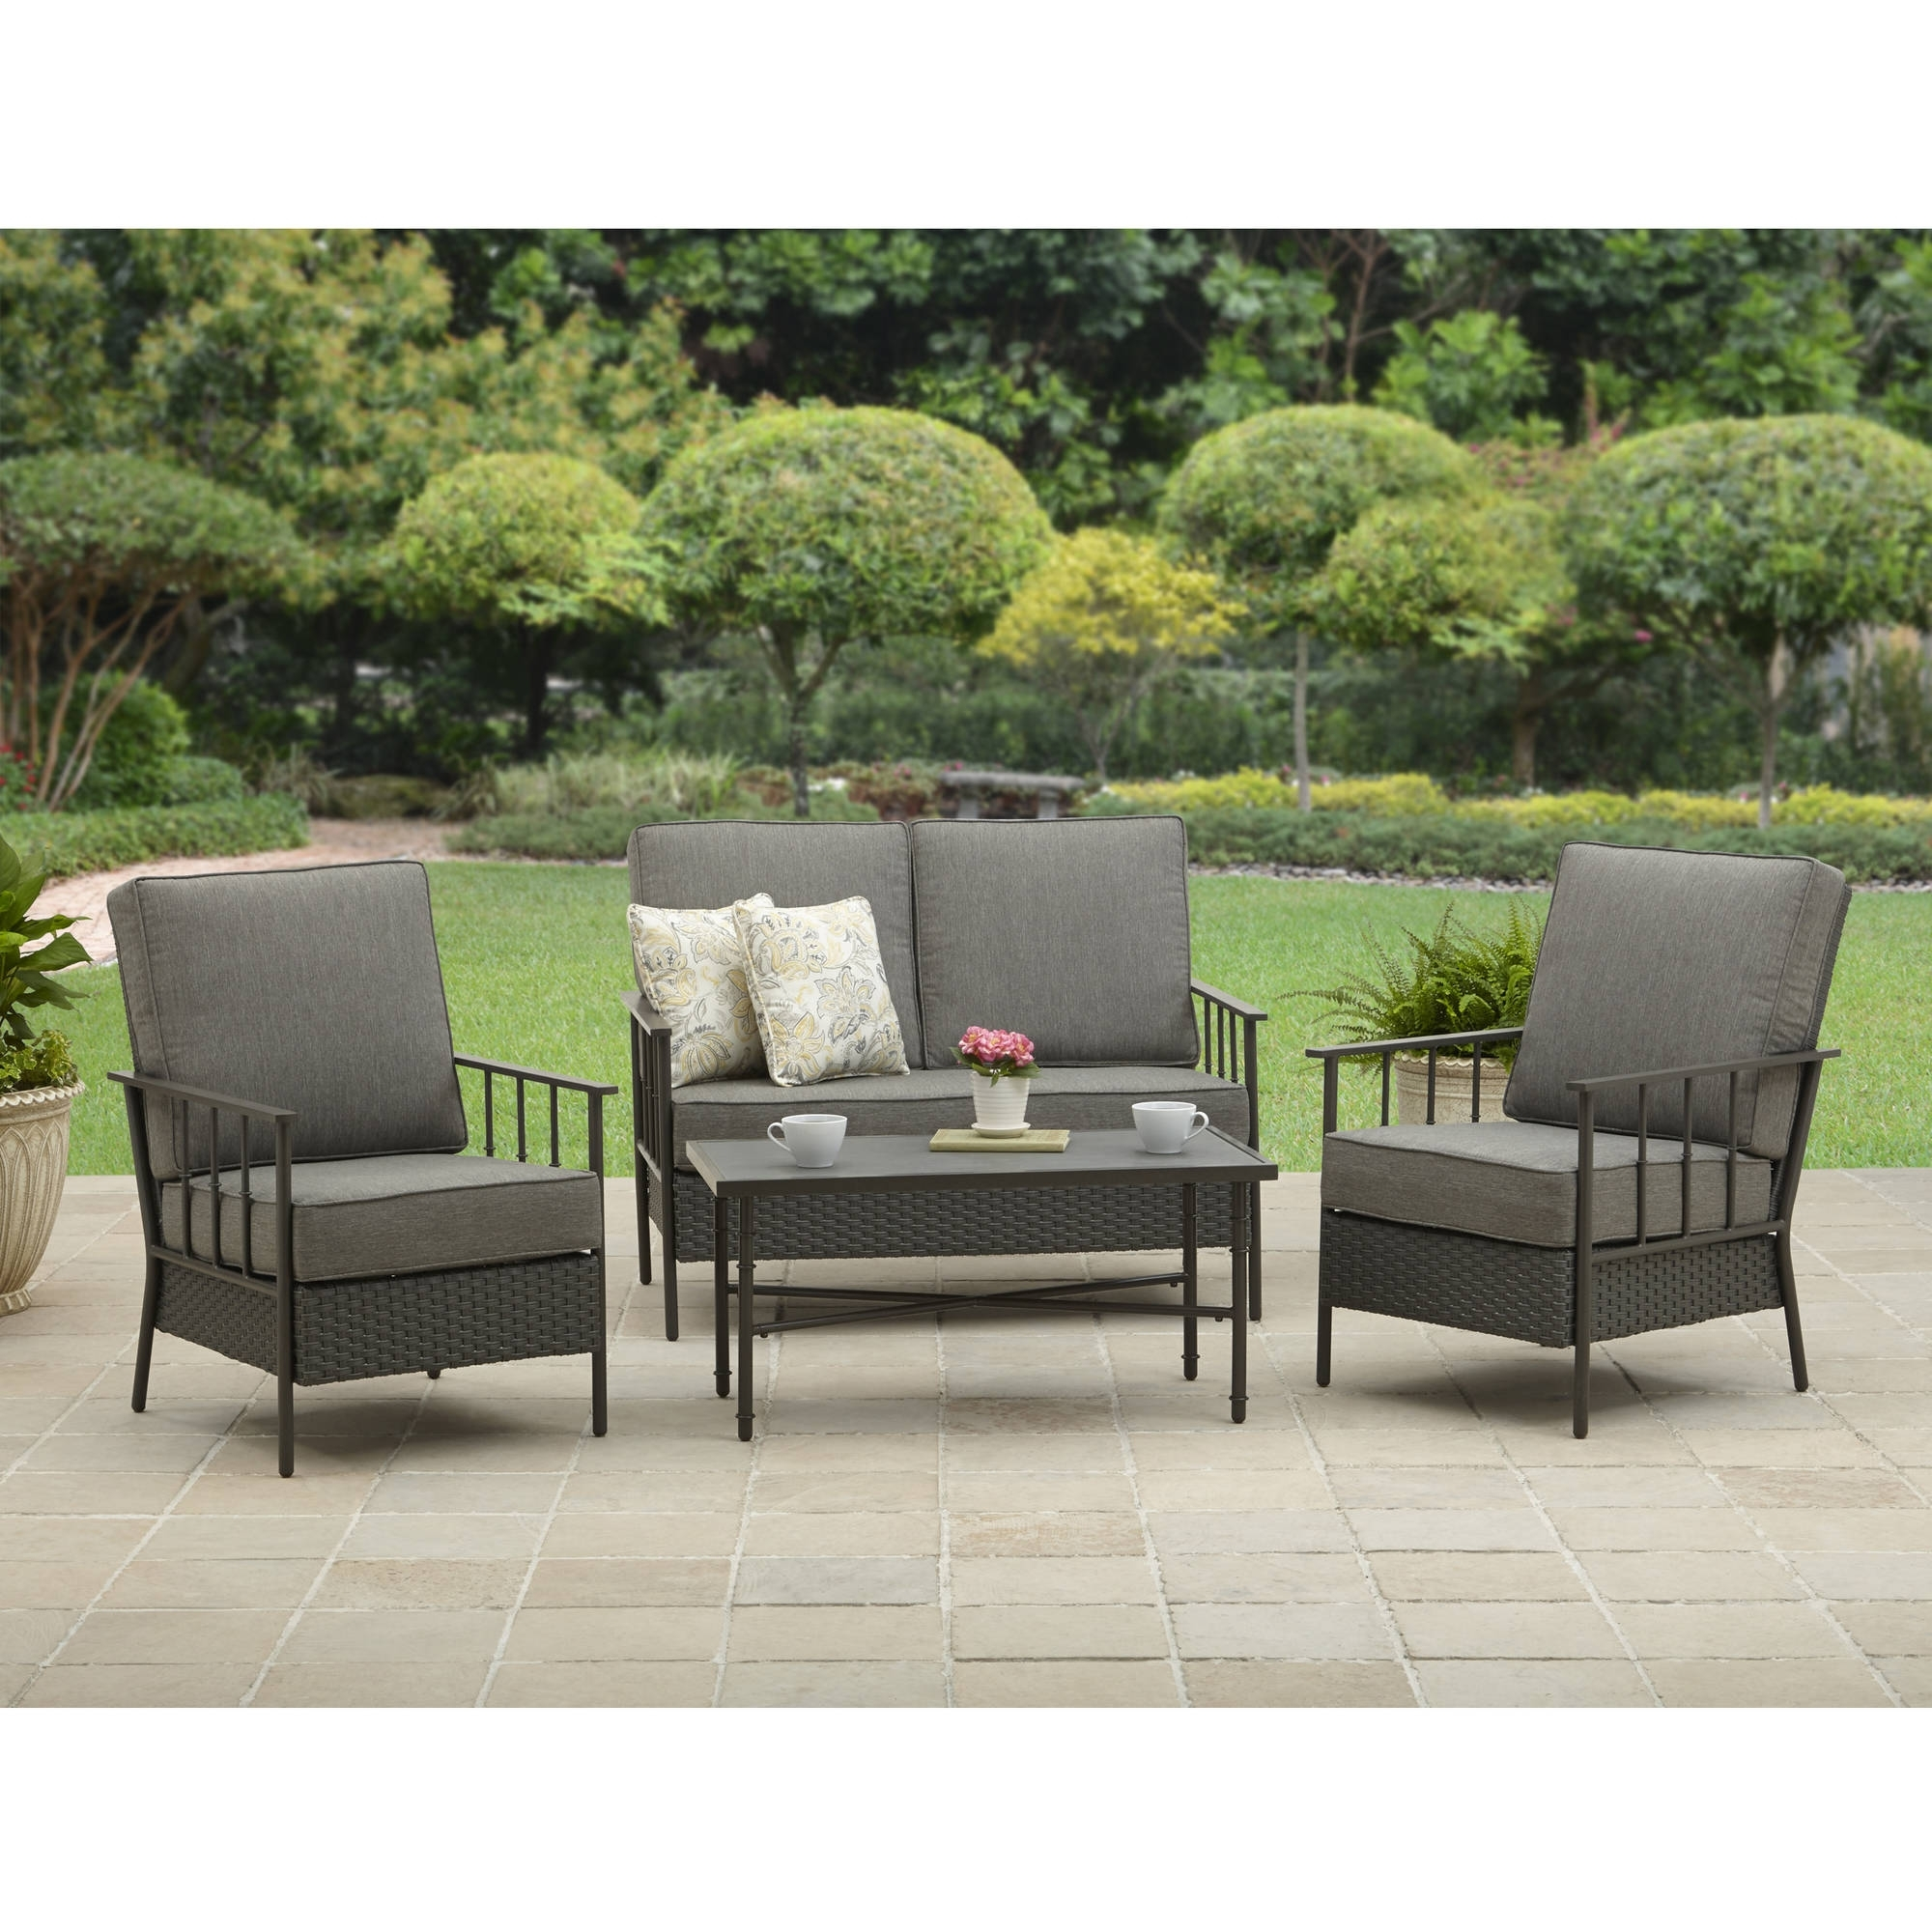 Black Patio Conversation Sets For Well Known Better Homes And Garden Fairwater 4 Piece Outdoor Conversation Set (View 8 of 15)